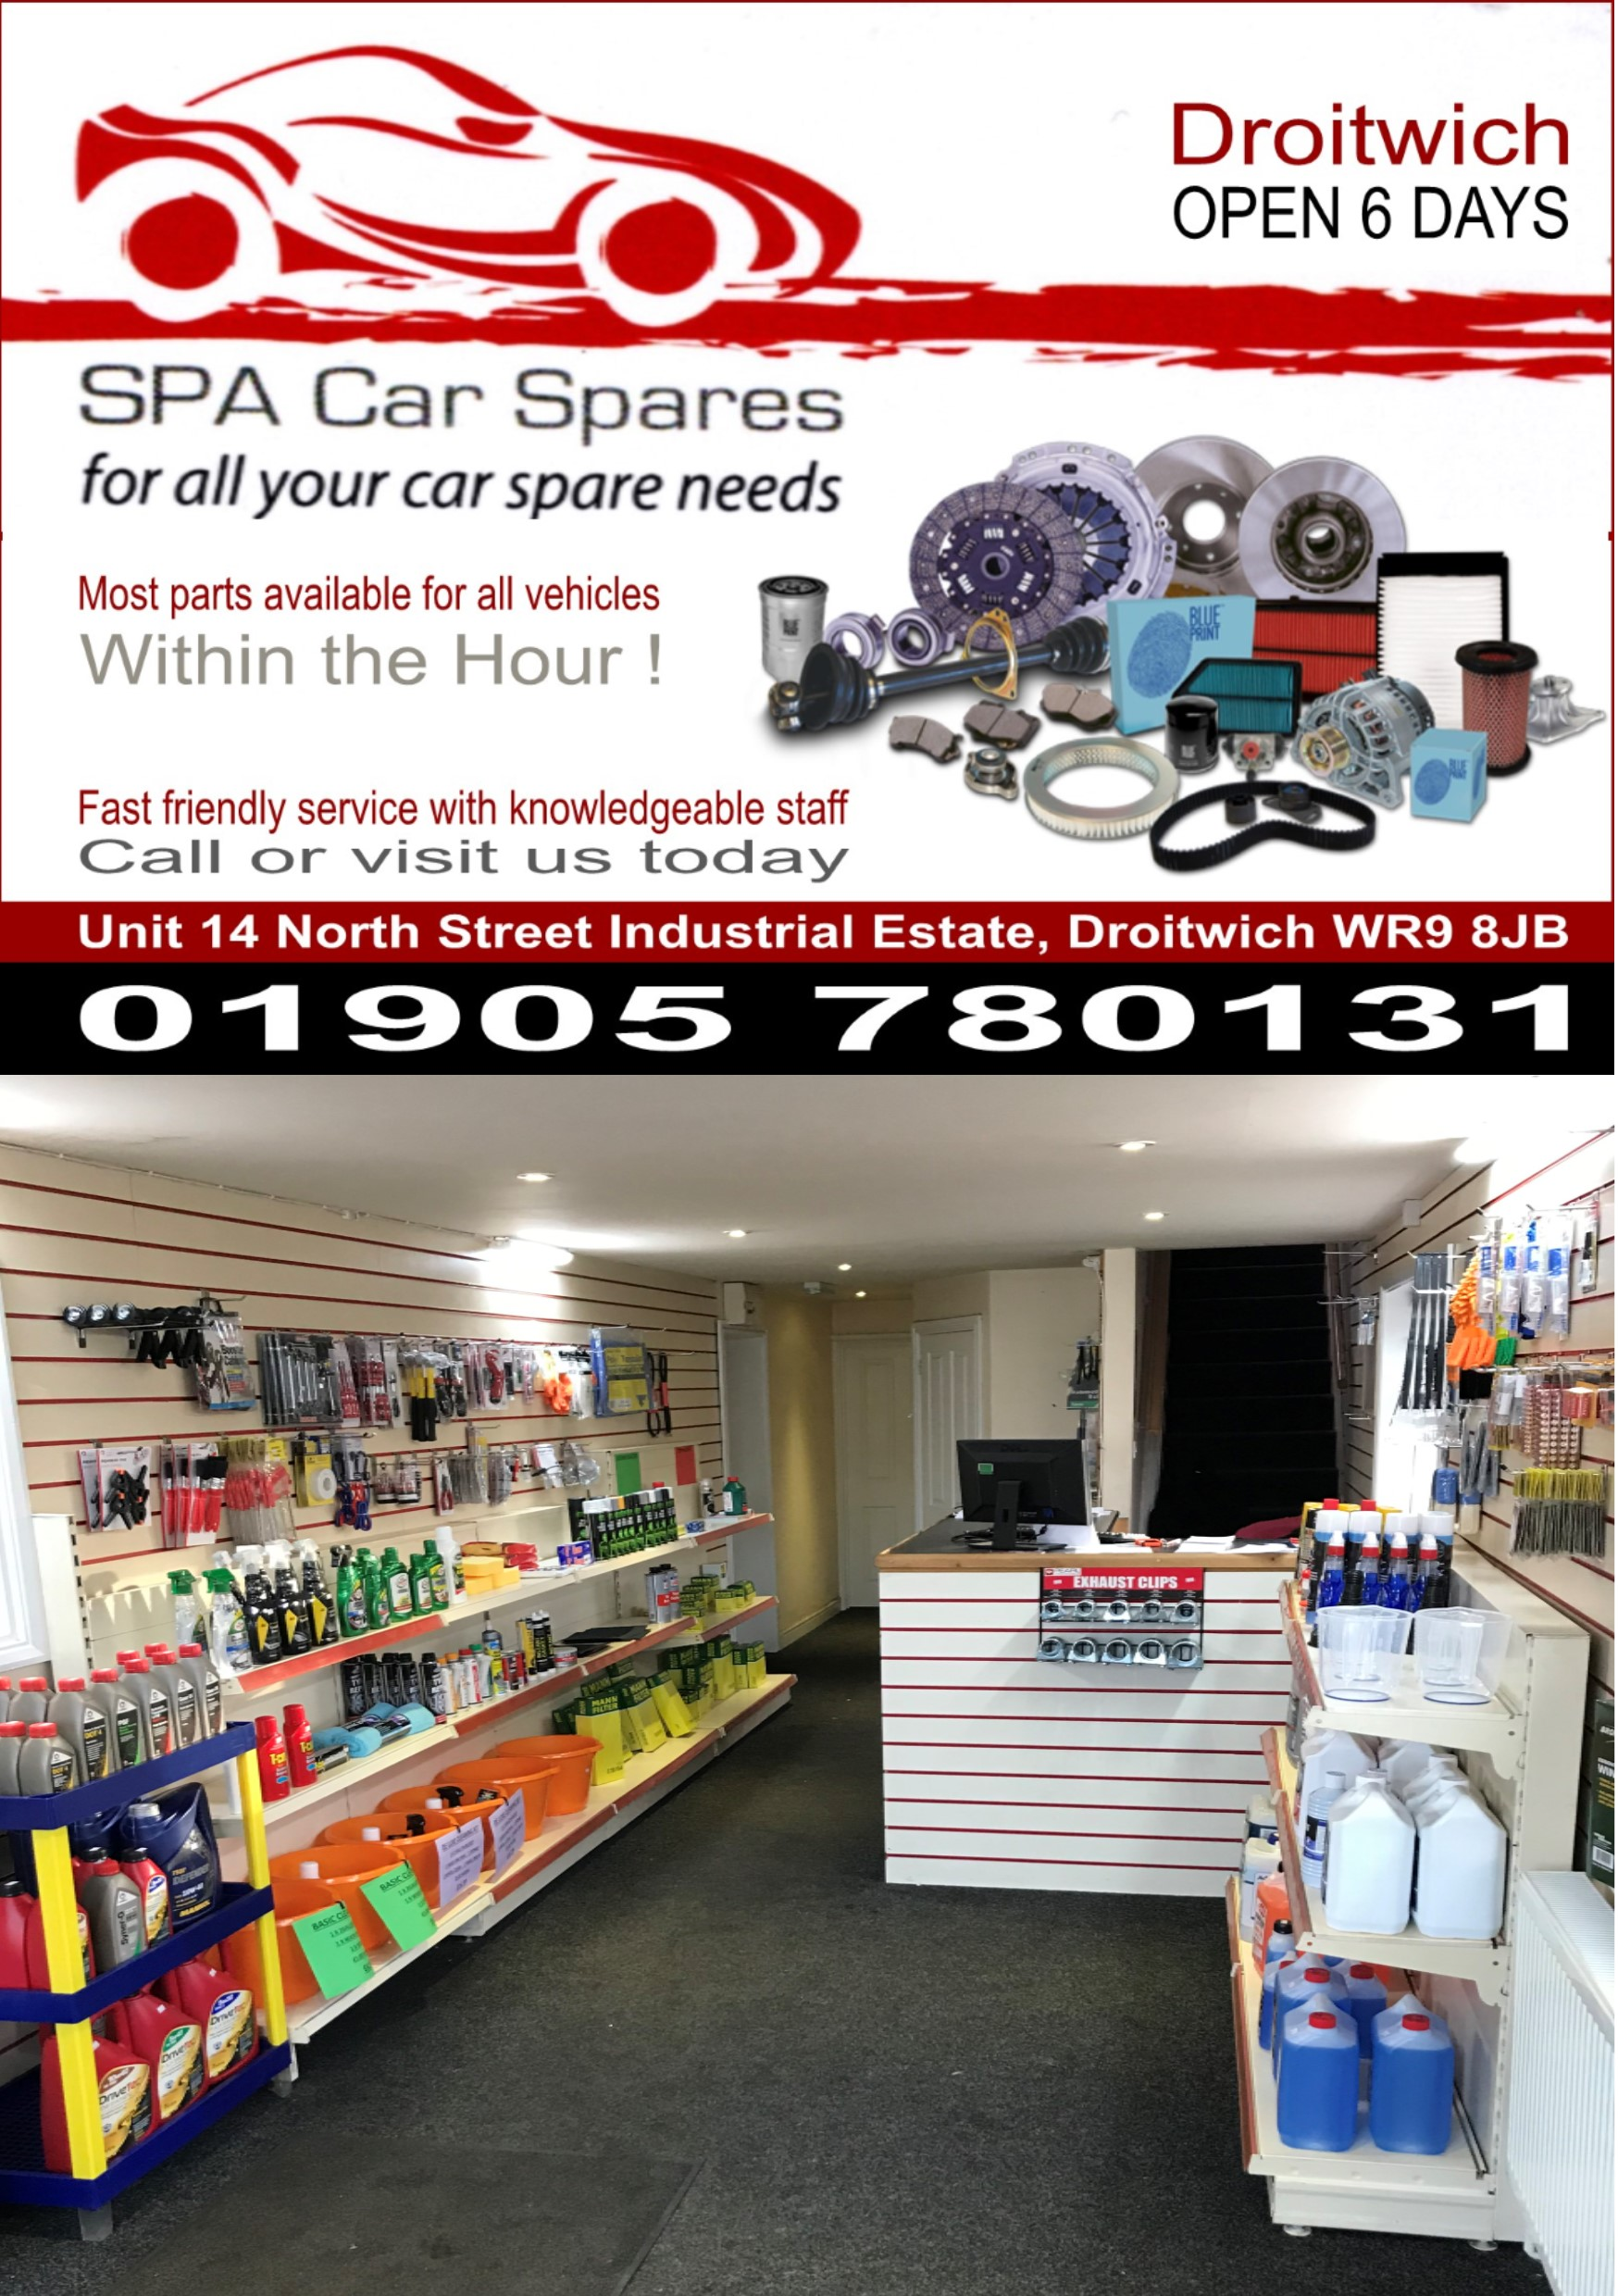 SPA CAR SPARES DROITWICH